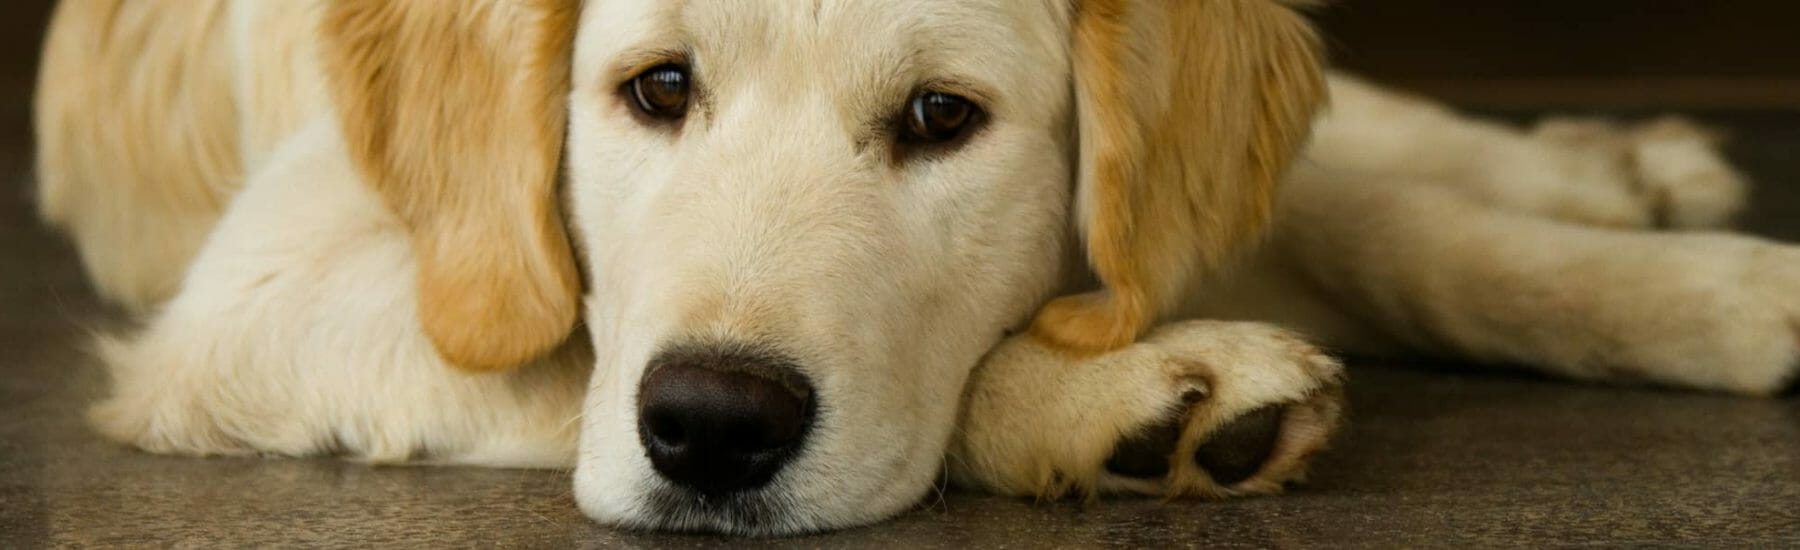 Golden dog resting head on the floor looking at camera